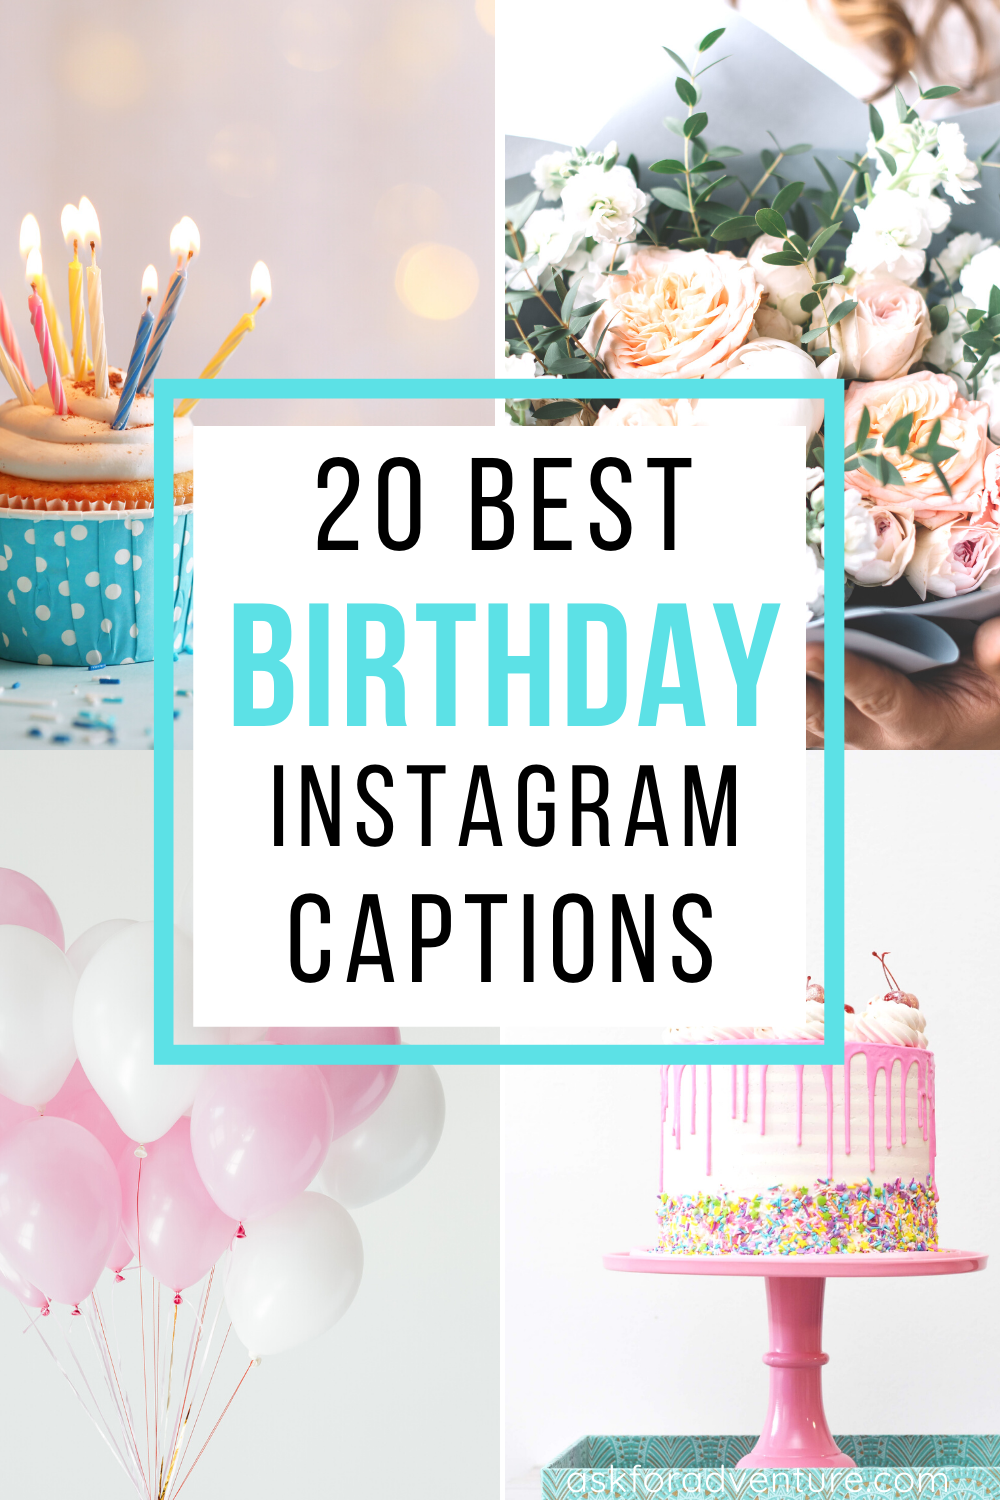 20 Cute Birthday Captions for Instagram Pictures ...